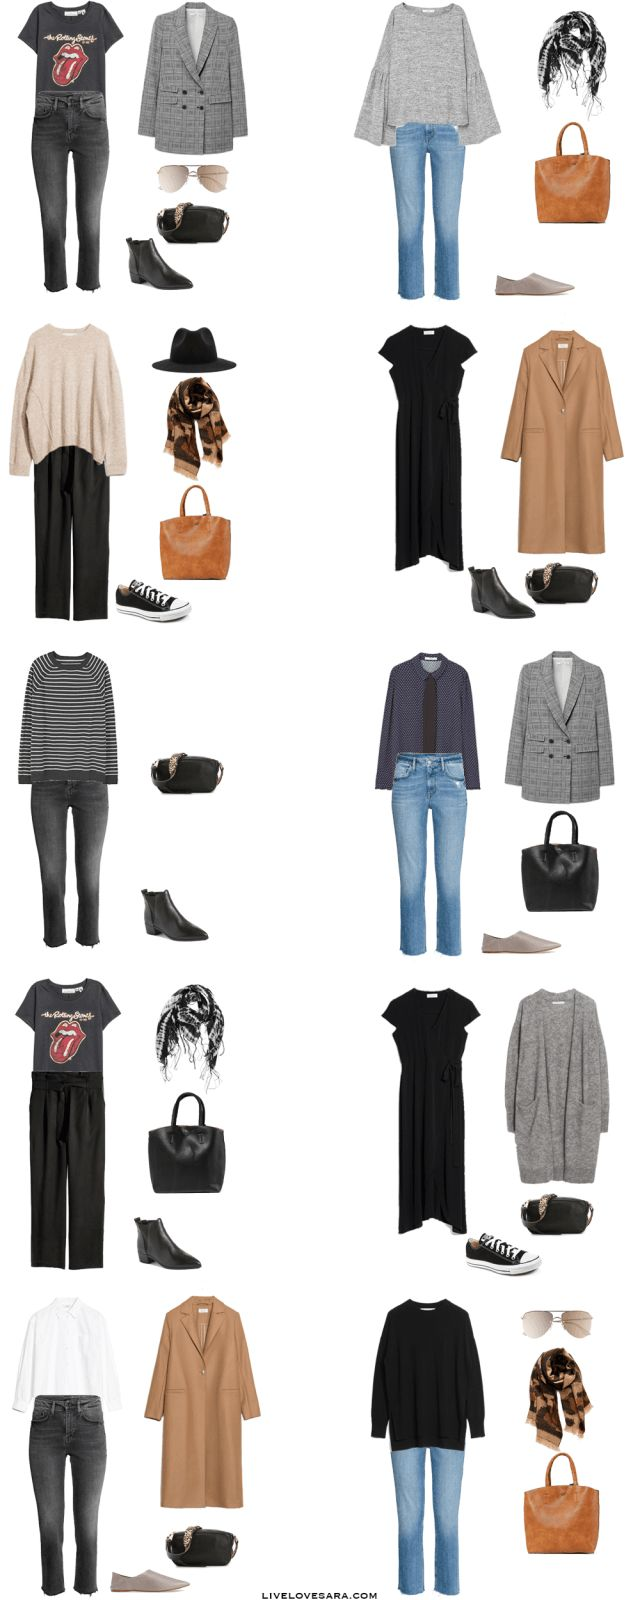 What to Pack for 10 Days in Germany Packing Light List Outfit Options 1-10